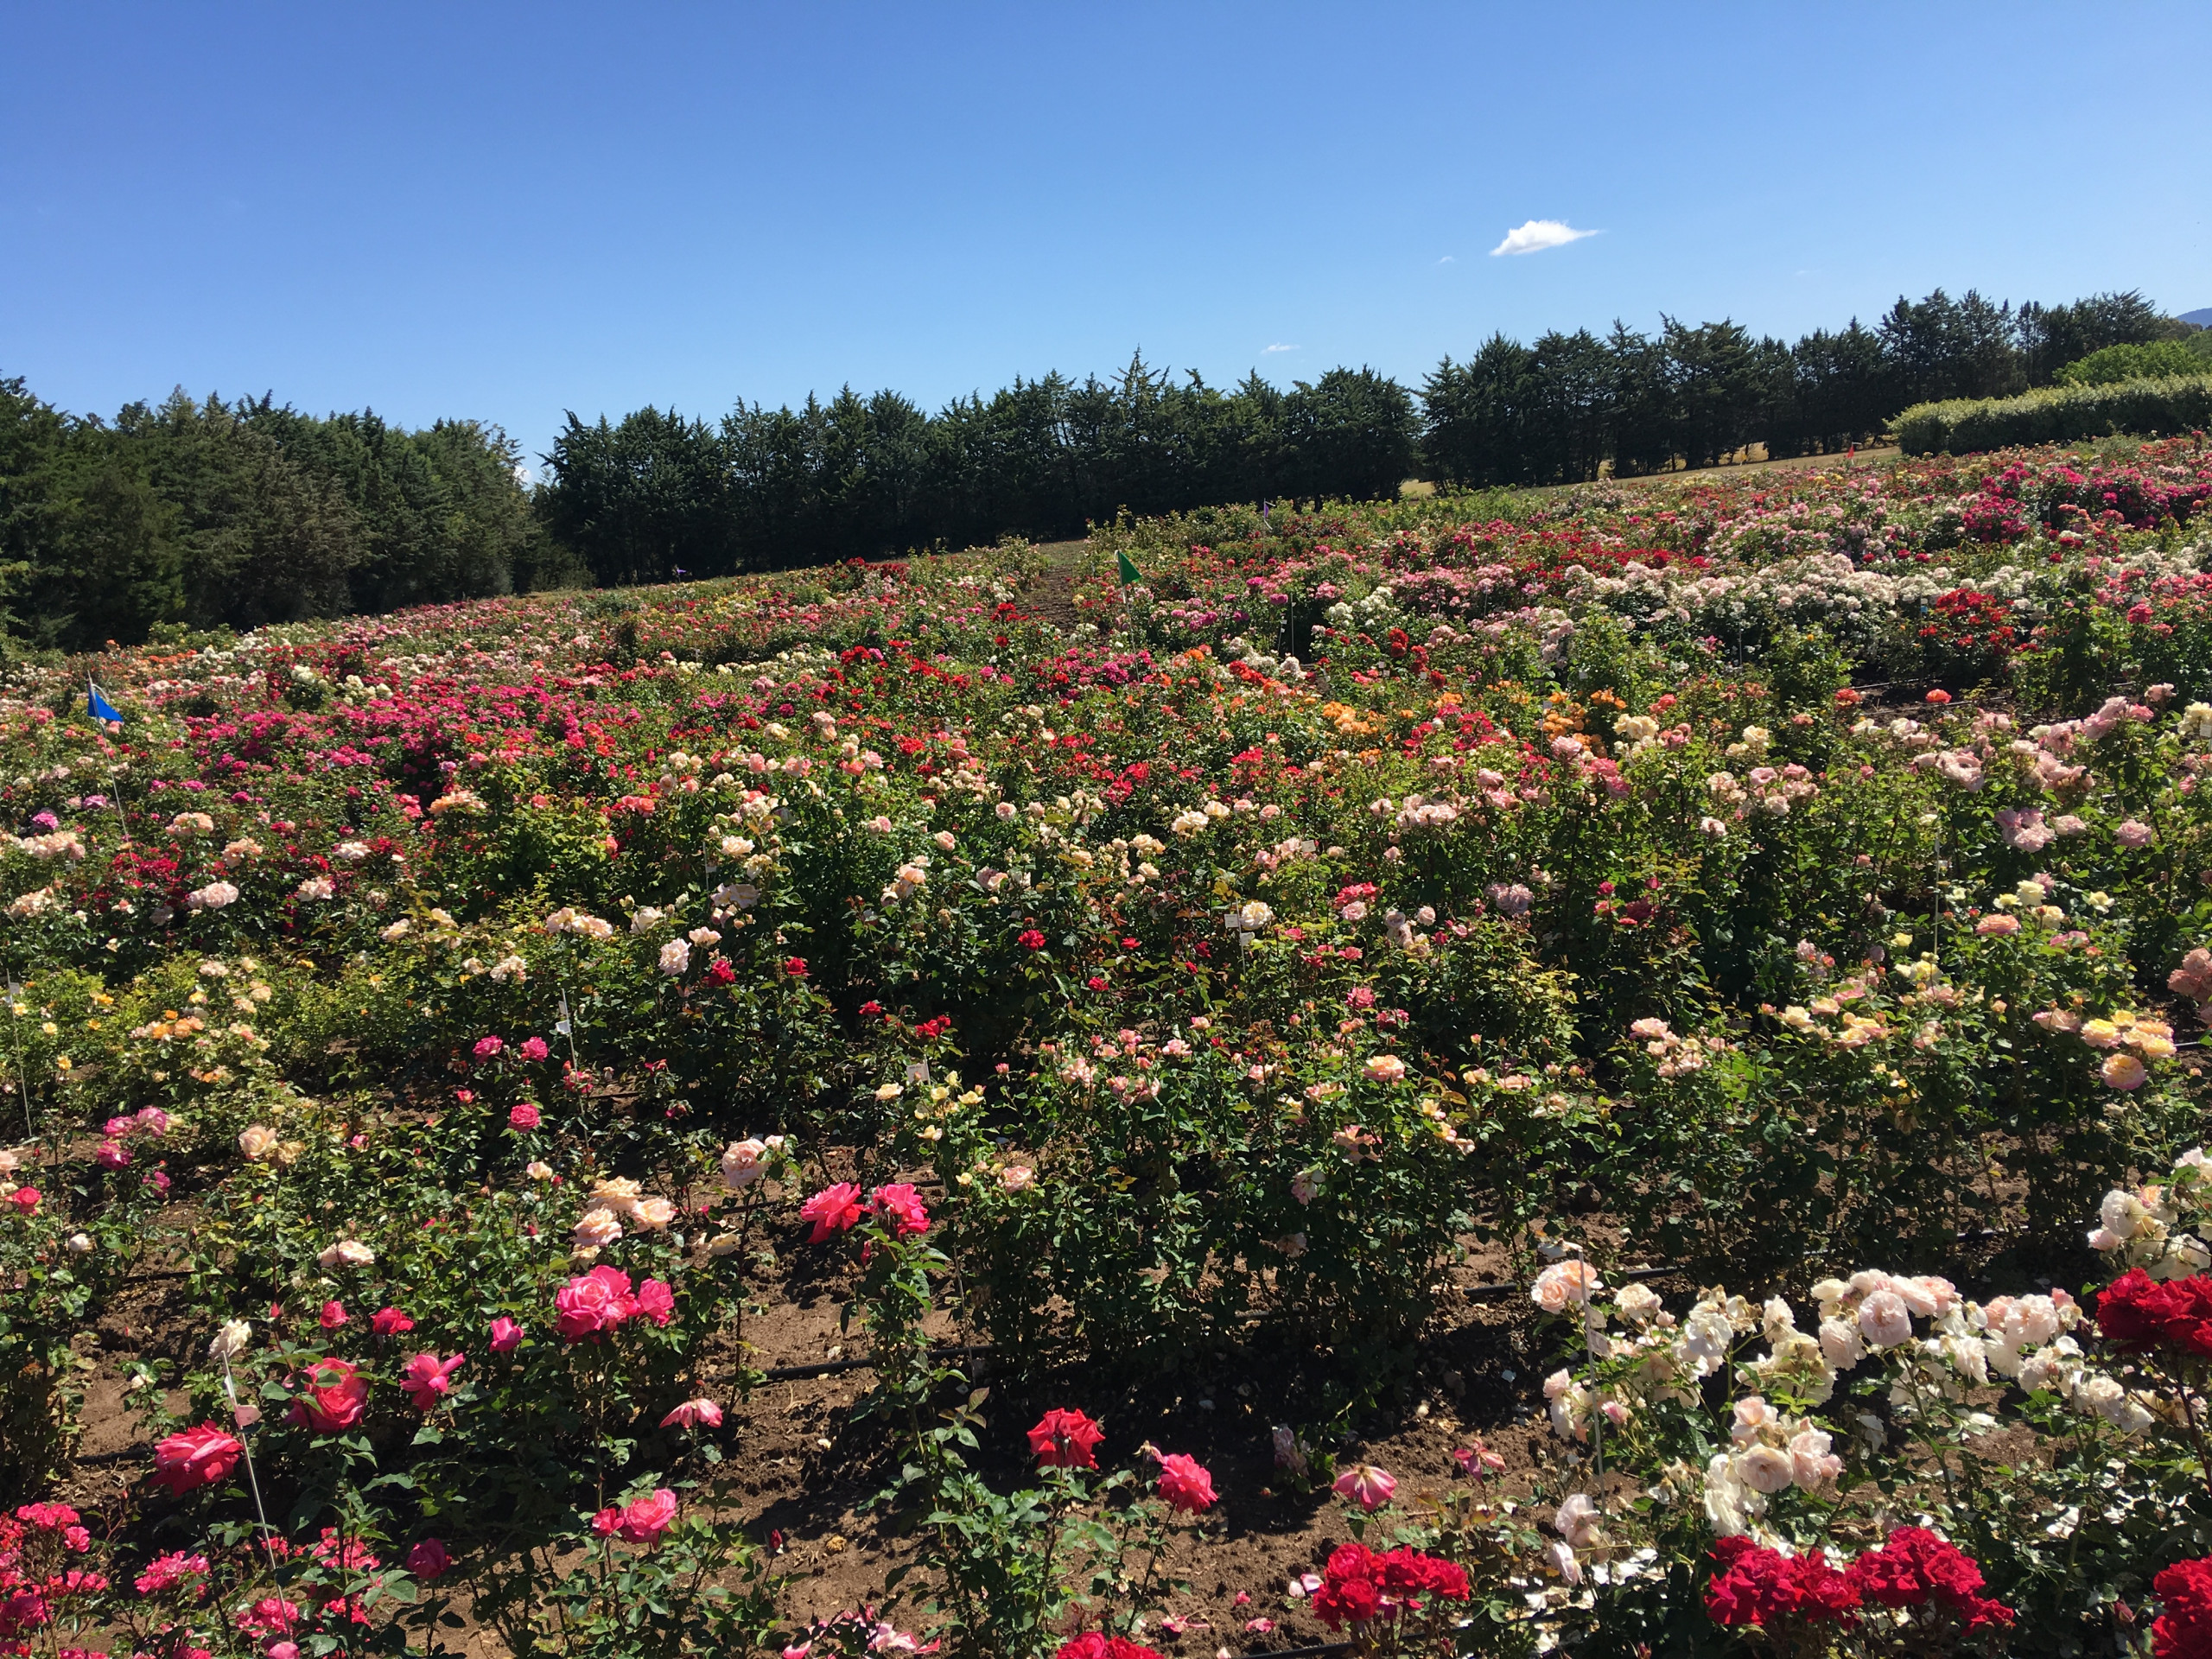 Fields of scented roses at meilland